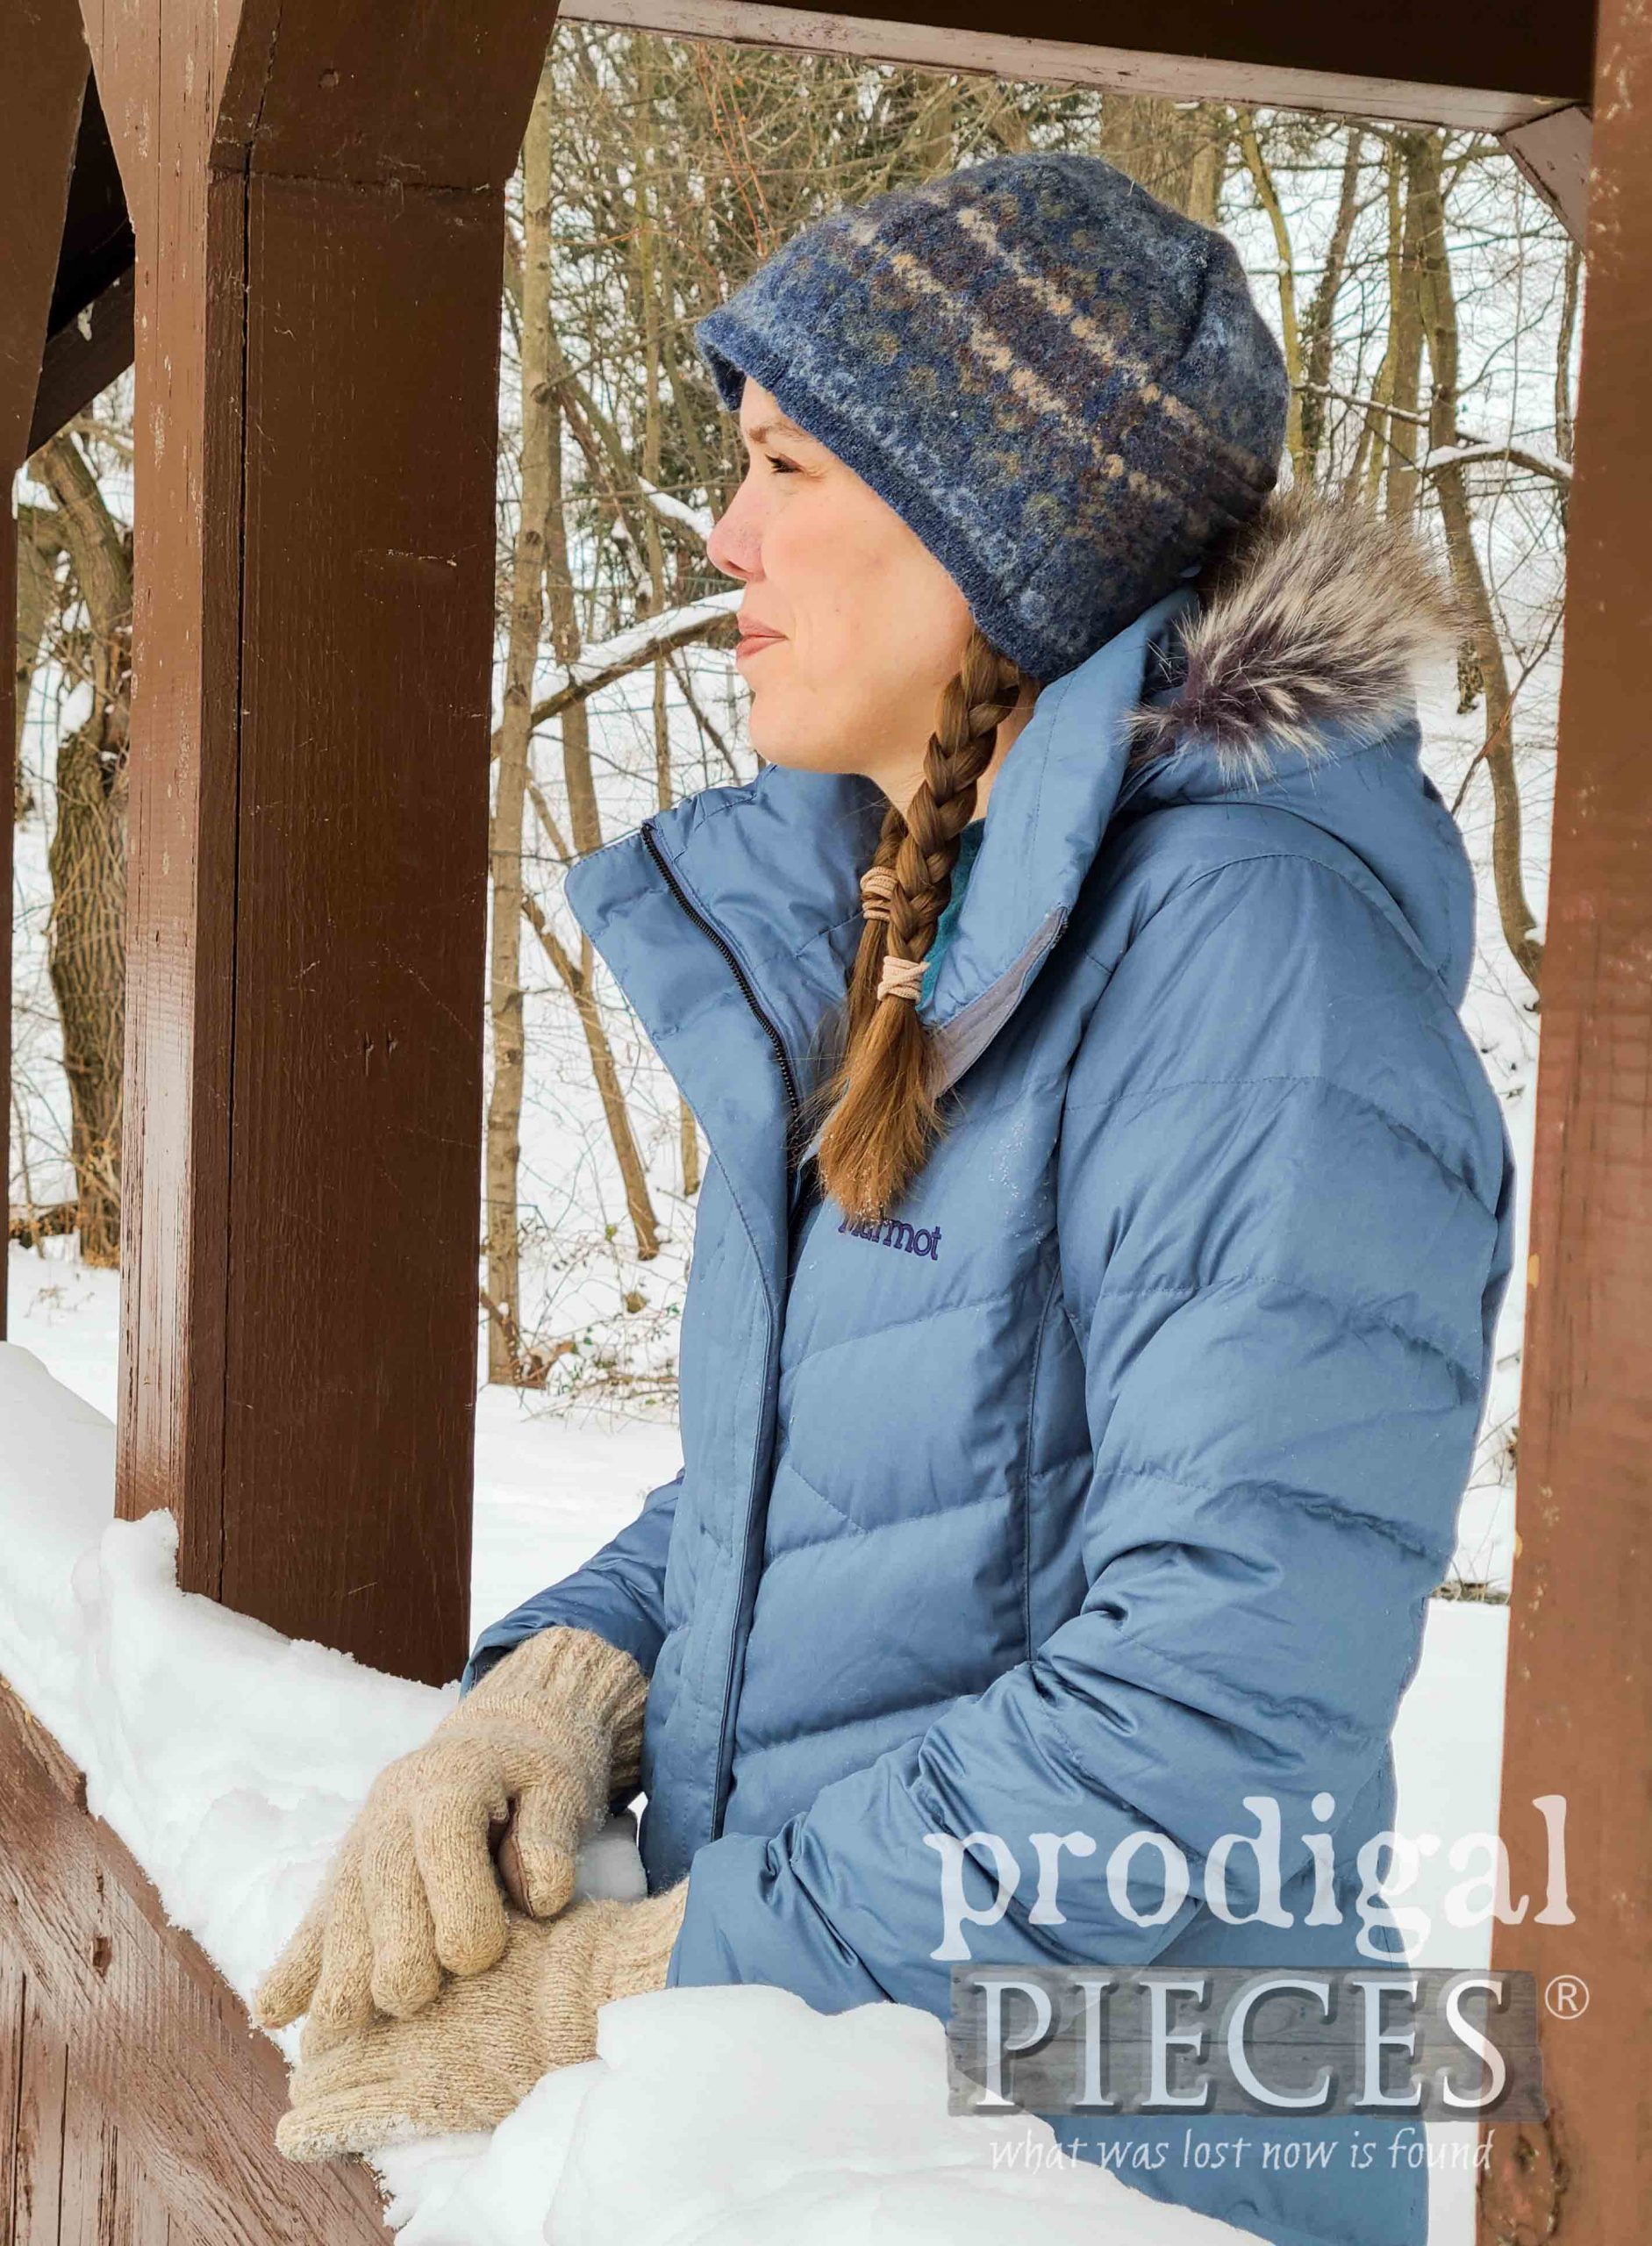 Blue Felted Wool Hat for Winter by Larissa of Prodigal Pieces | prodigalpieces.com #prodigalpieces #handmade #sewing #fashion #diy